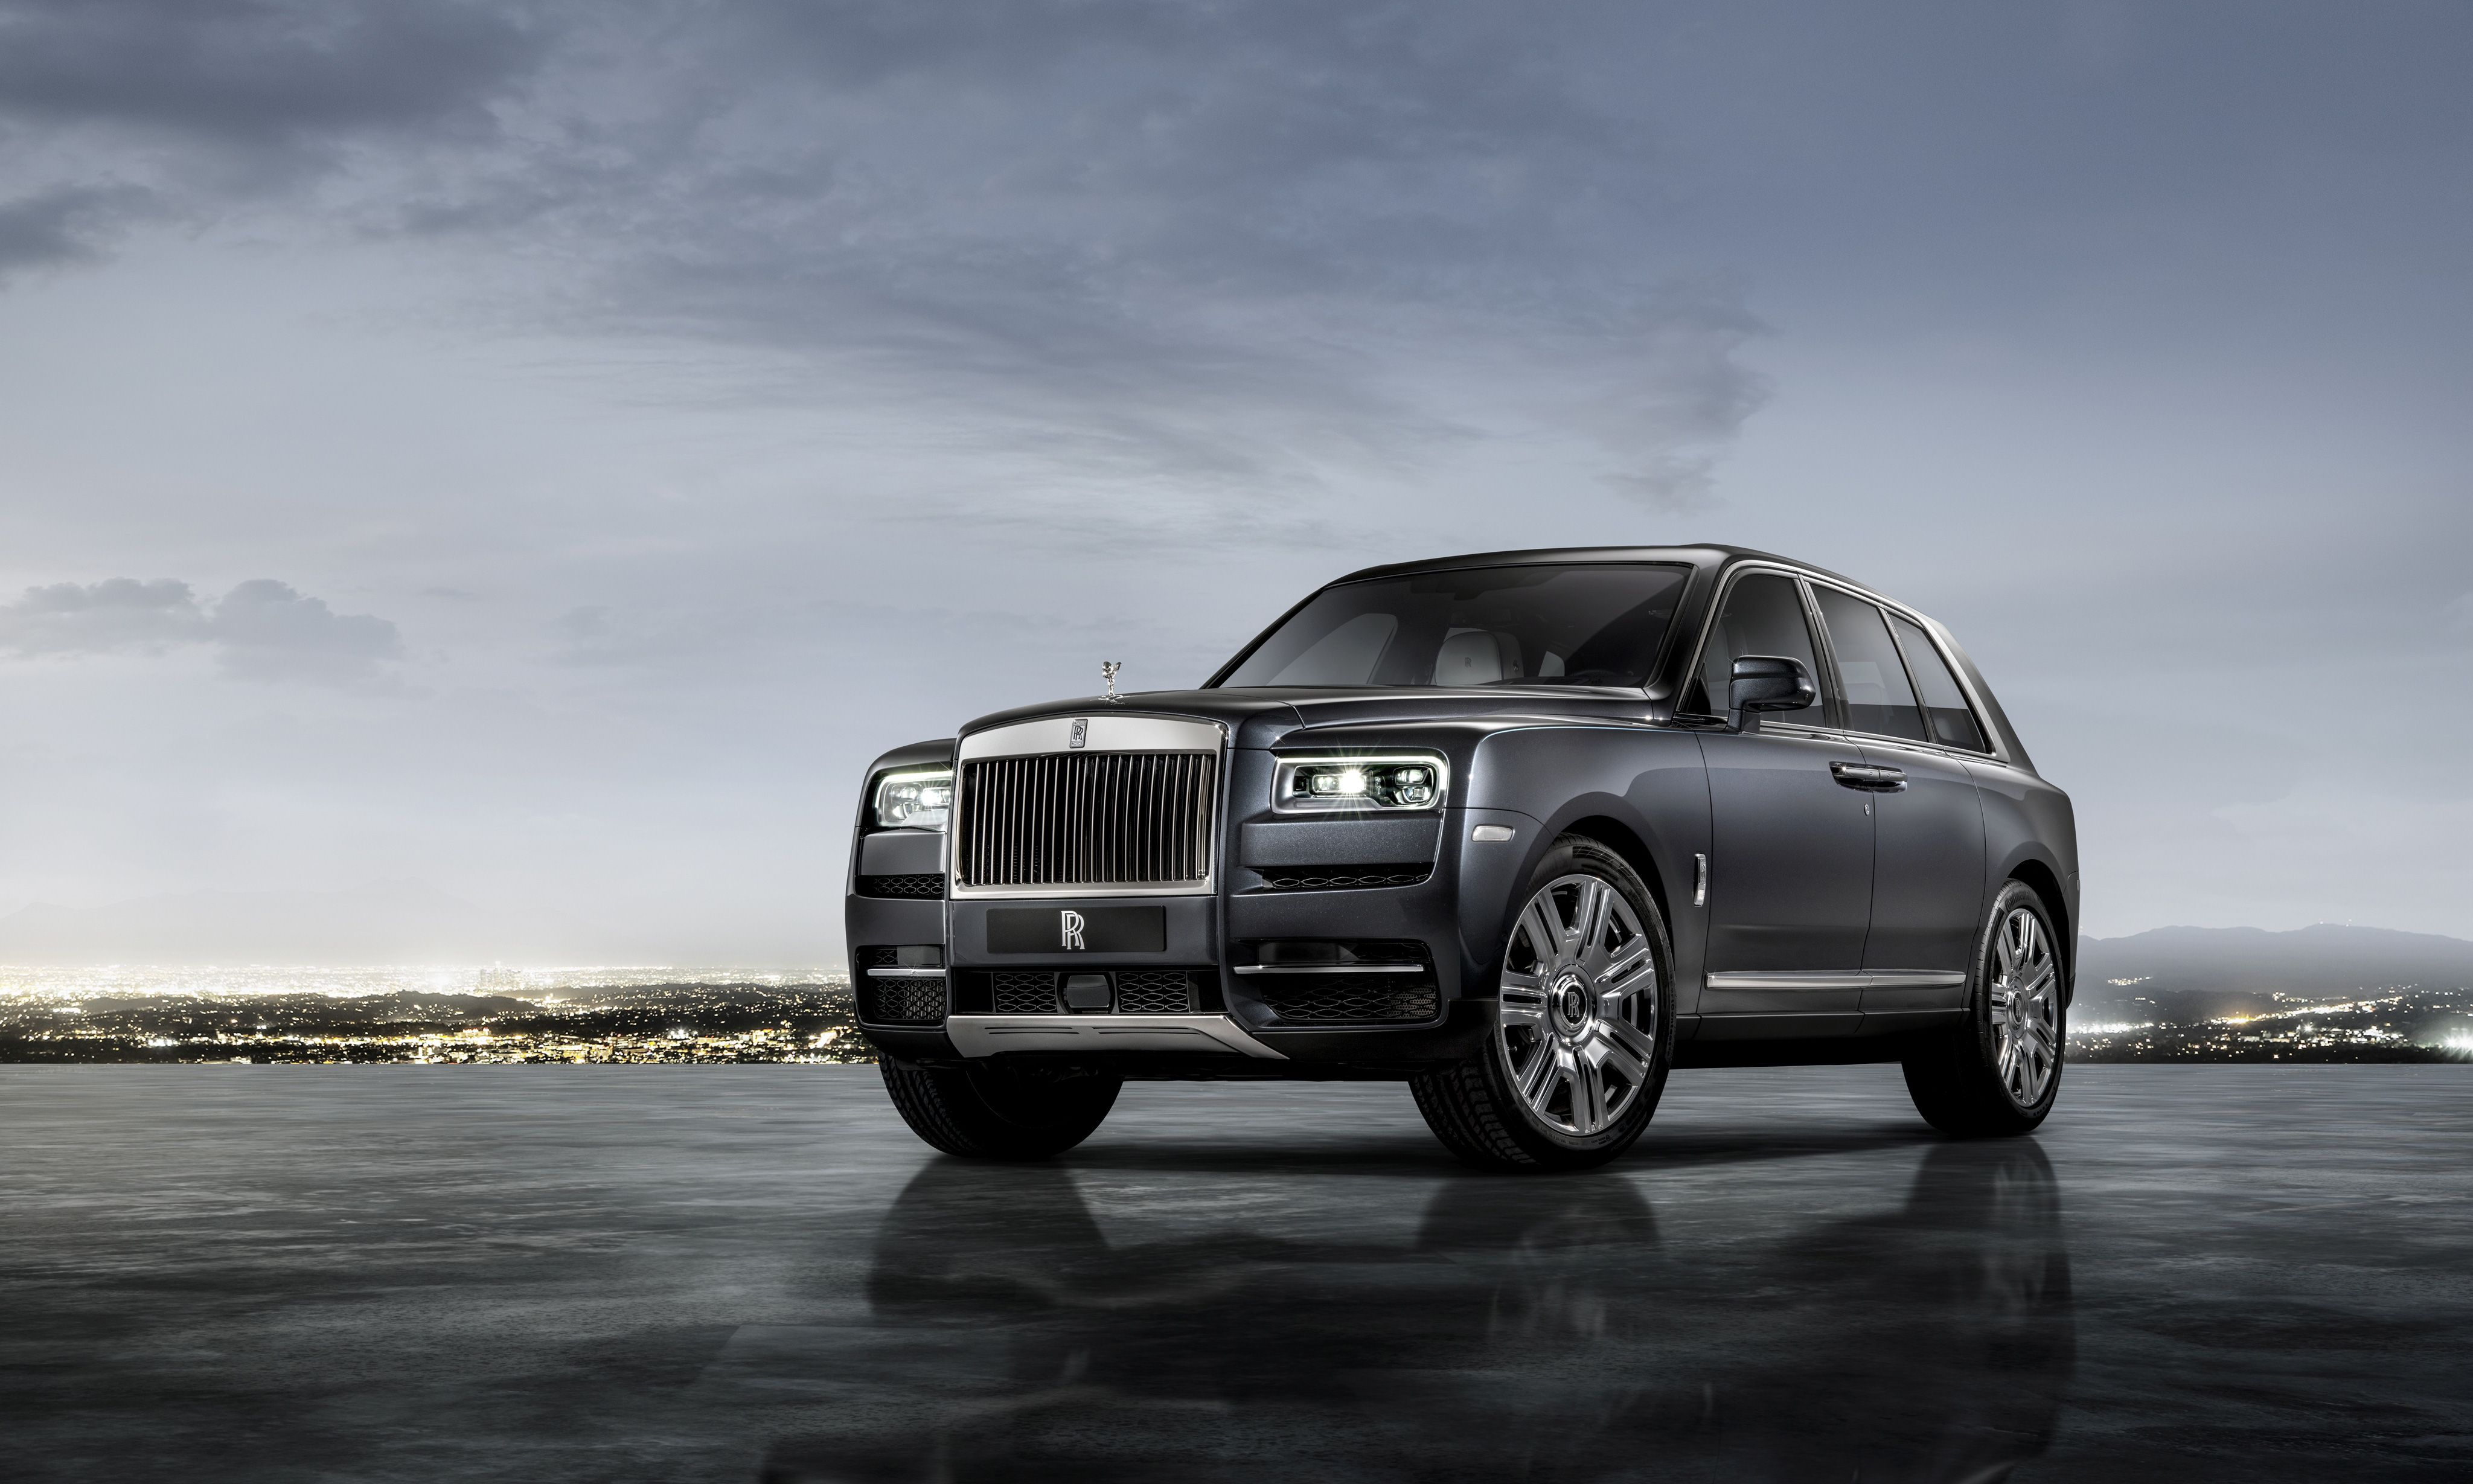 Rolls Royce Cullinan Wallpapers Top Free Rolls Royce Cullinan Backgrounds Wallpaperaccess